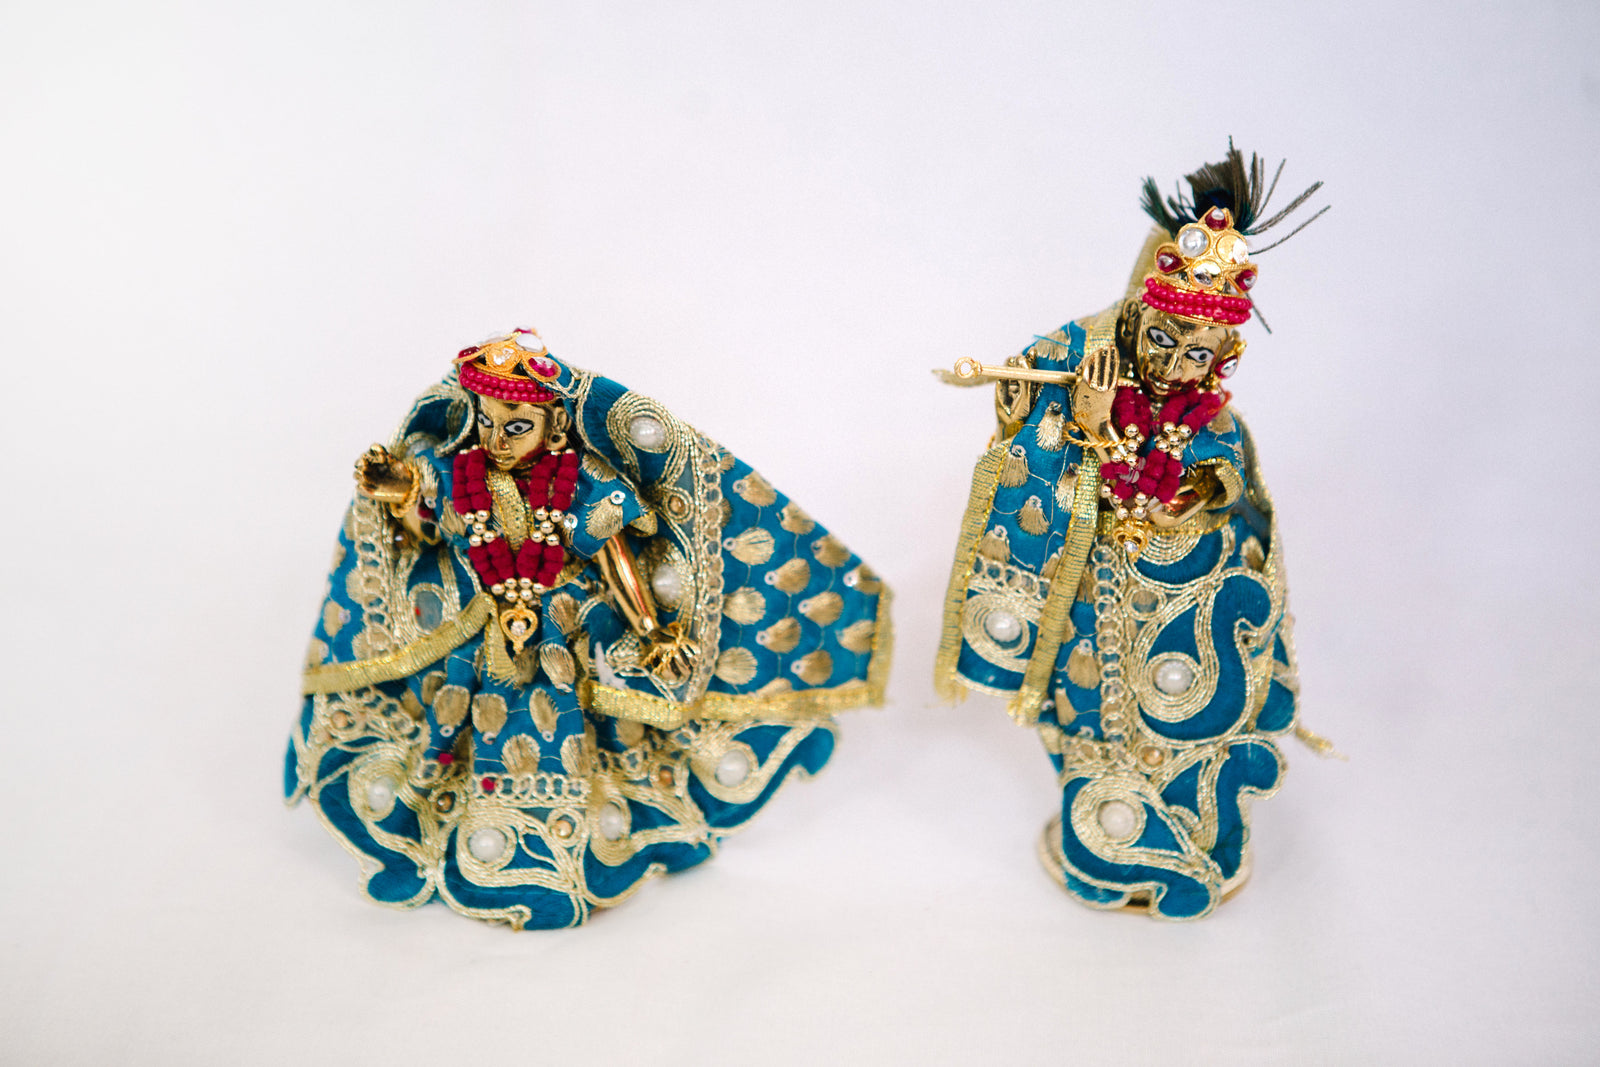 Radha & Krishna Figurines - Blue & Gold